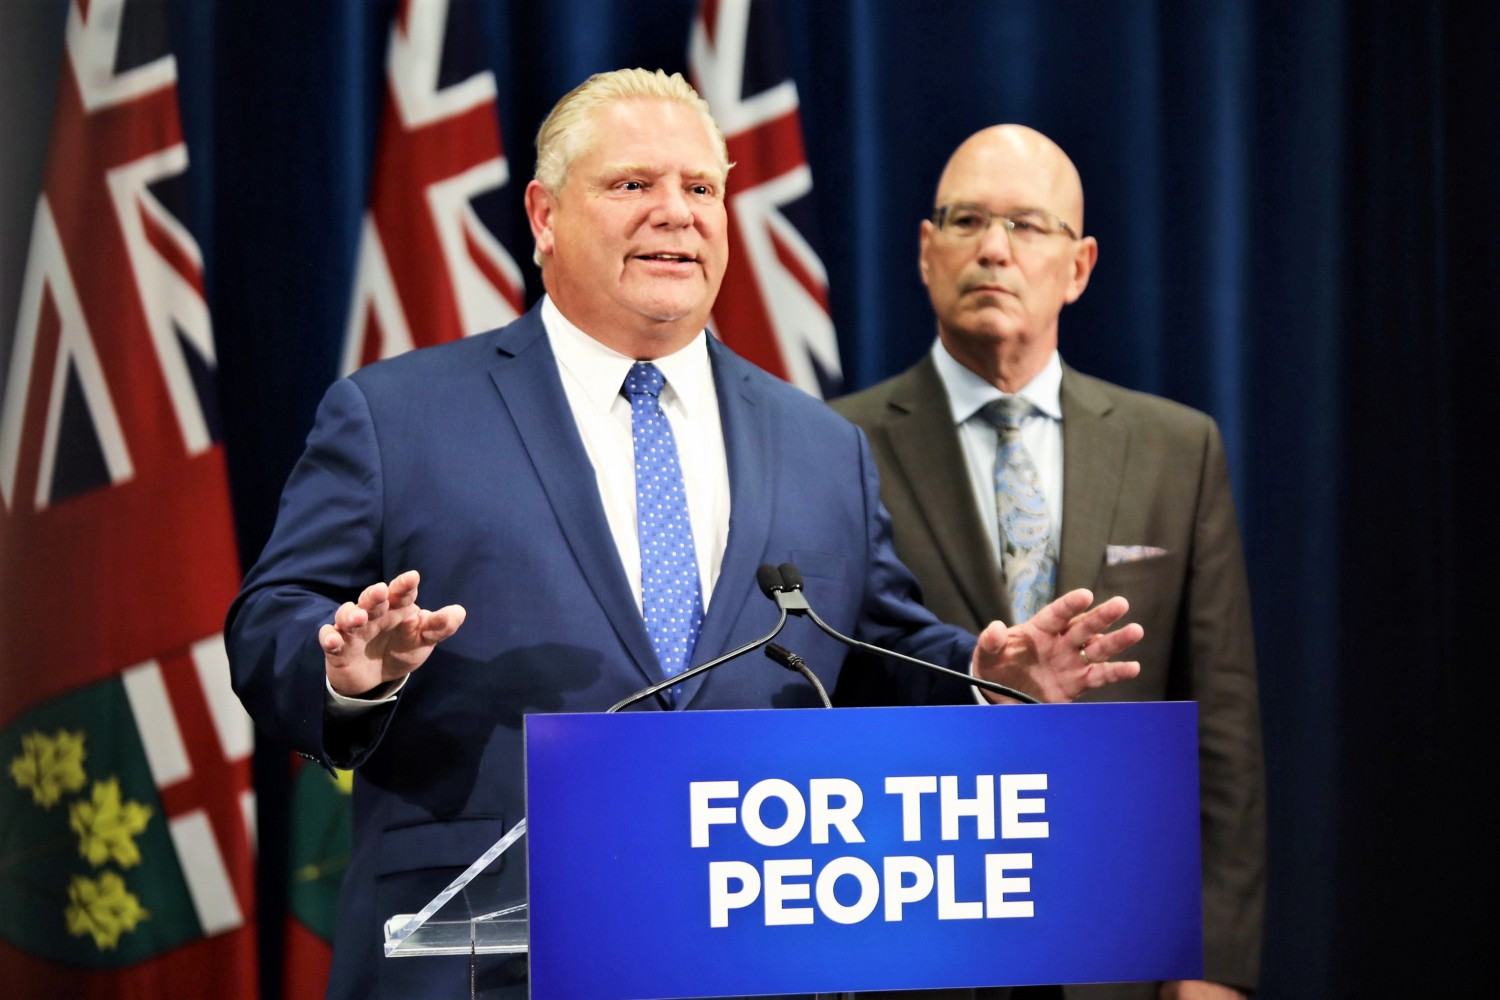 Ford's refusal to guarantee paid sick days for essential workers harming Peel's vulnerable labour force